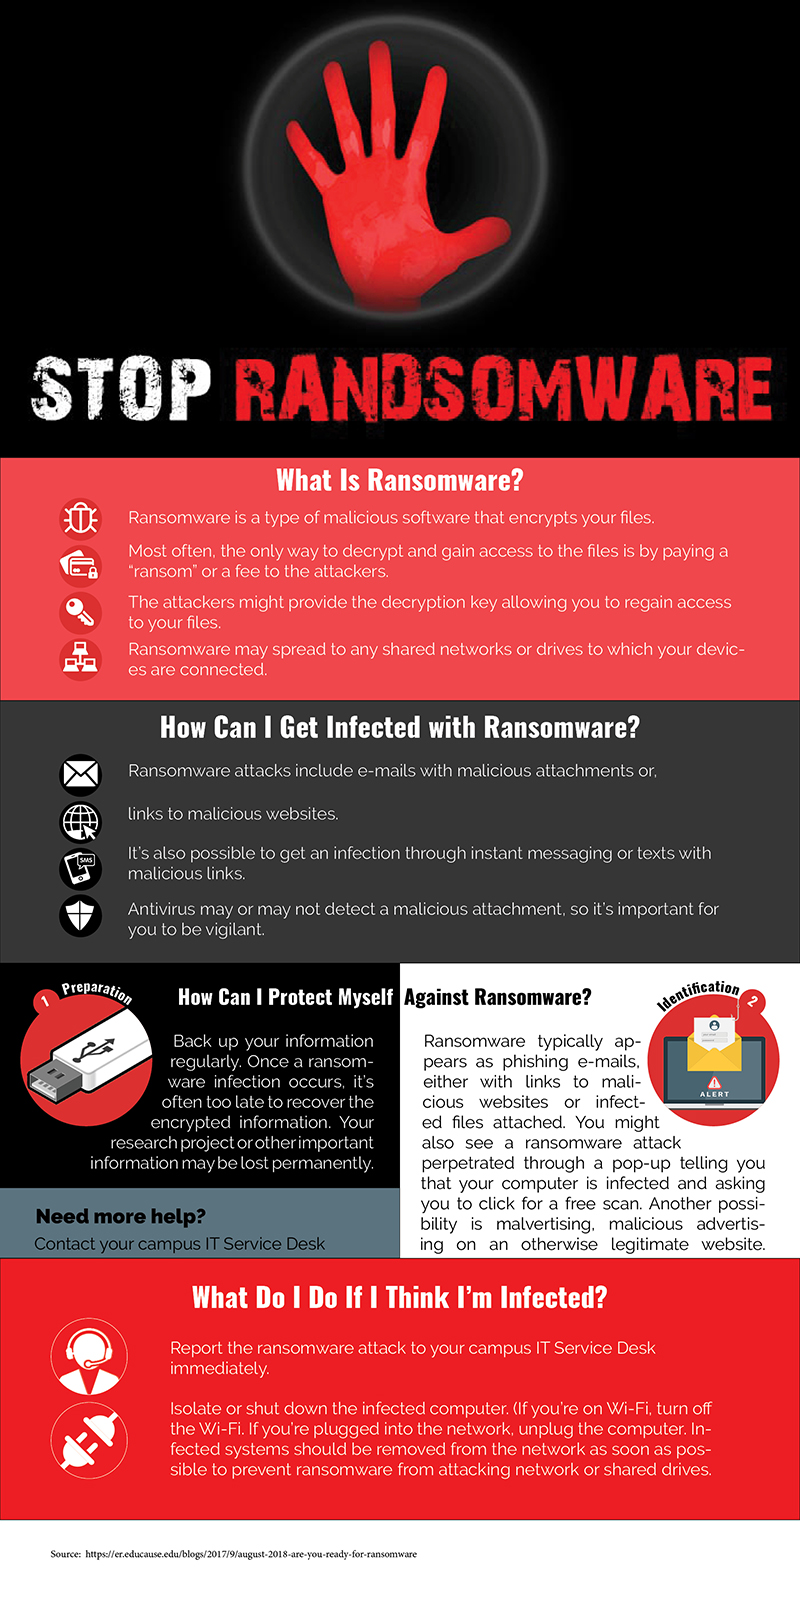 Hand posing a stop to indicate Stop Ransomware